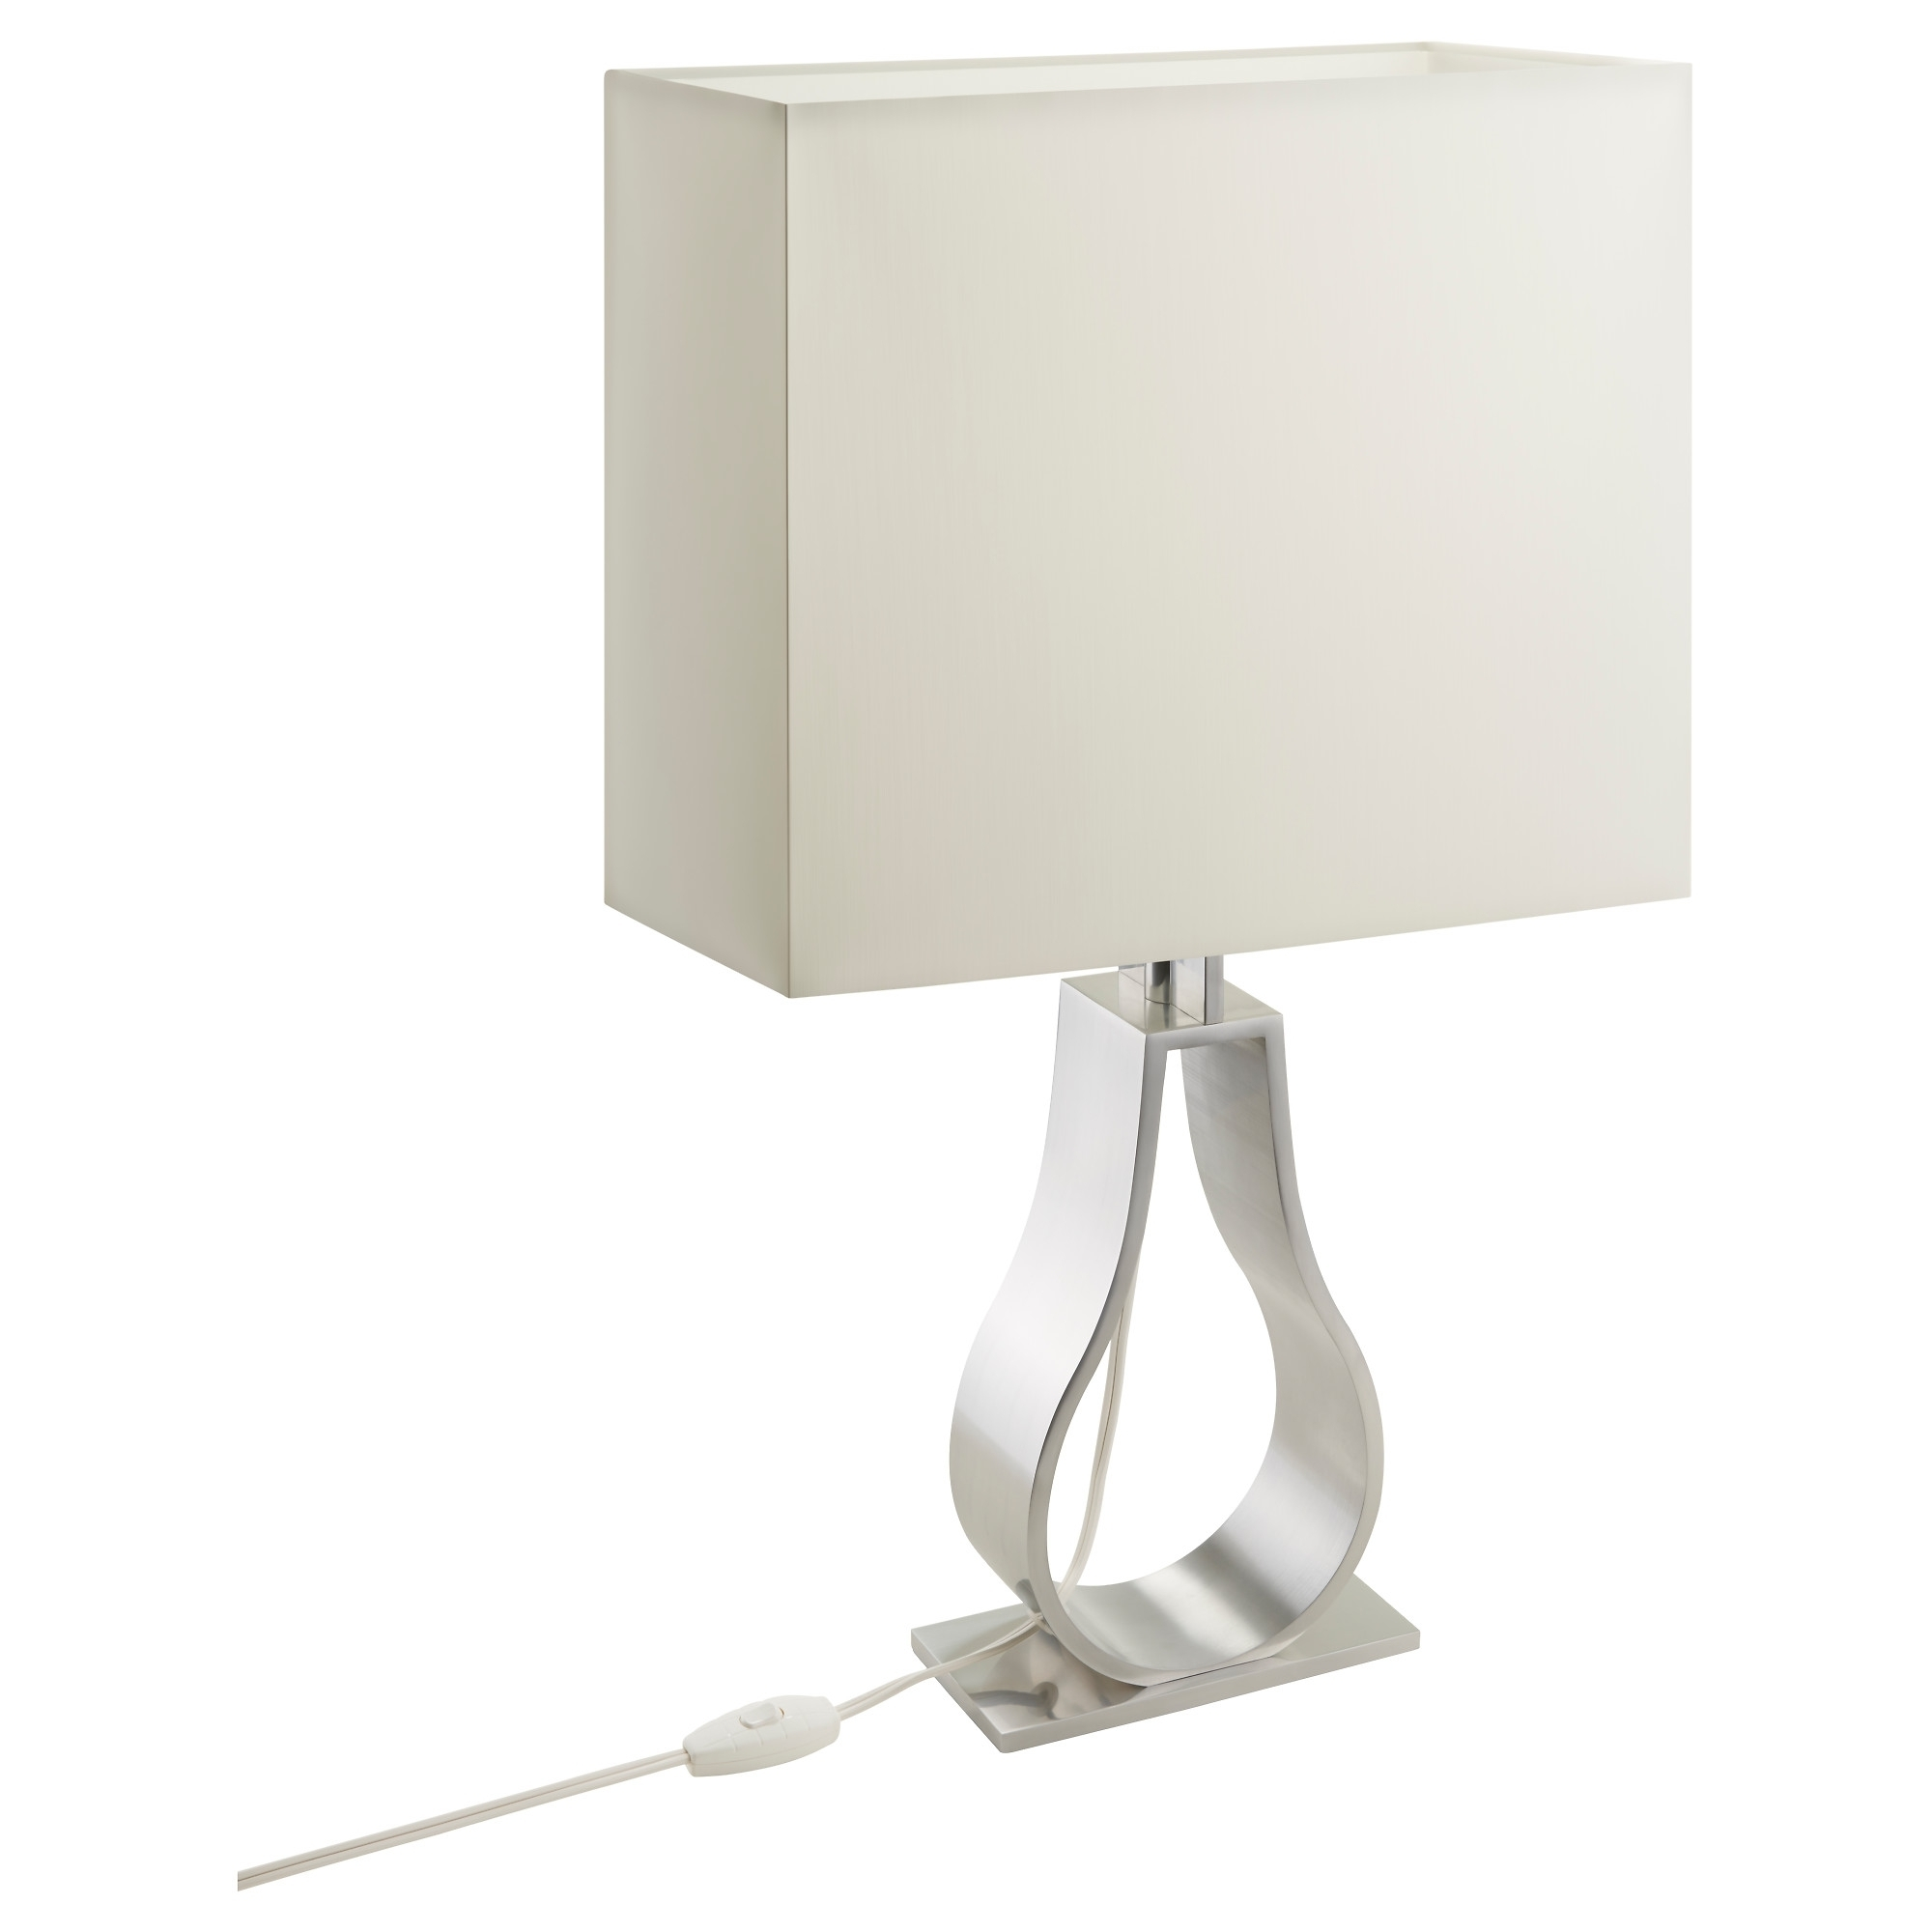 Gold Living Room Table Lamps Regarding Most Up To Date Top 66 Preeminent White Lights For Bedroom And Gold Table Lamp (Gallery 7 of 20)